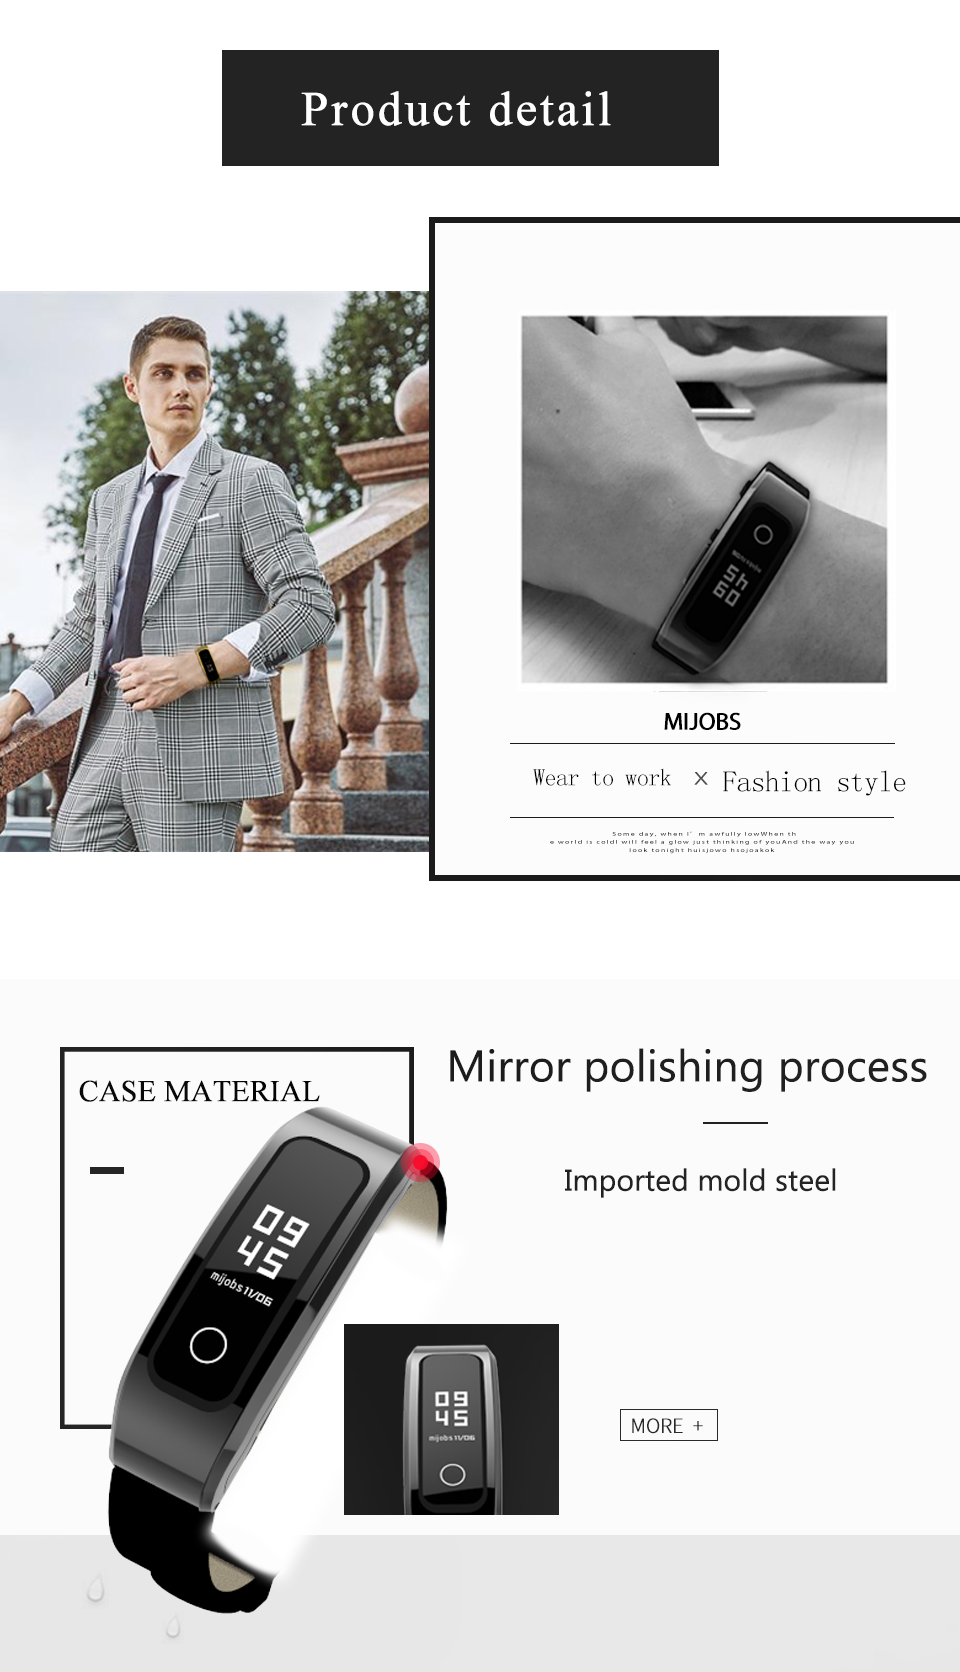 Mijobs High quality cowhide leather strap for huawei honor band 4 running wrist band watch bands wholesale